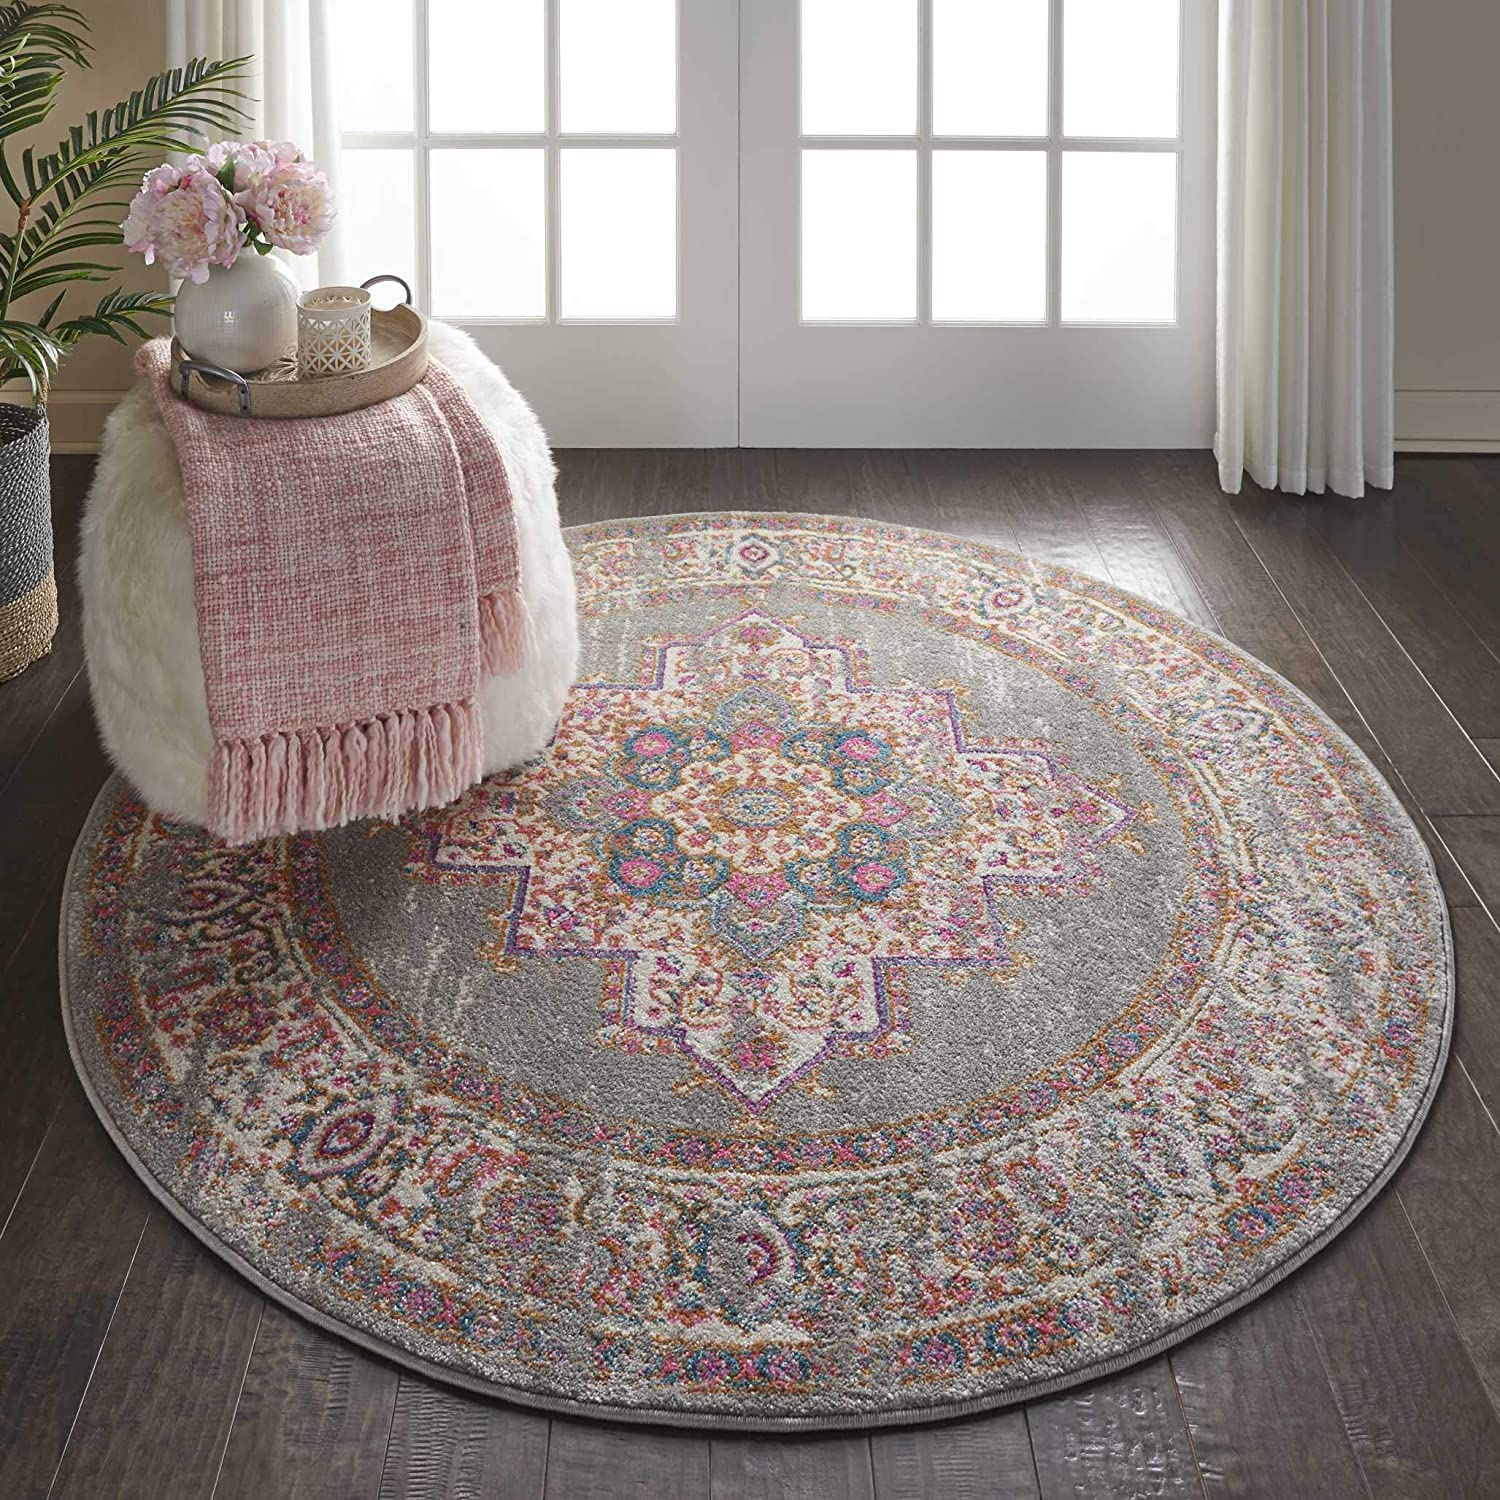 Nourison PSN03 Passion Bohemian Grey Area Rug 4'xROUND